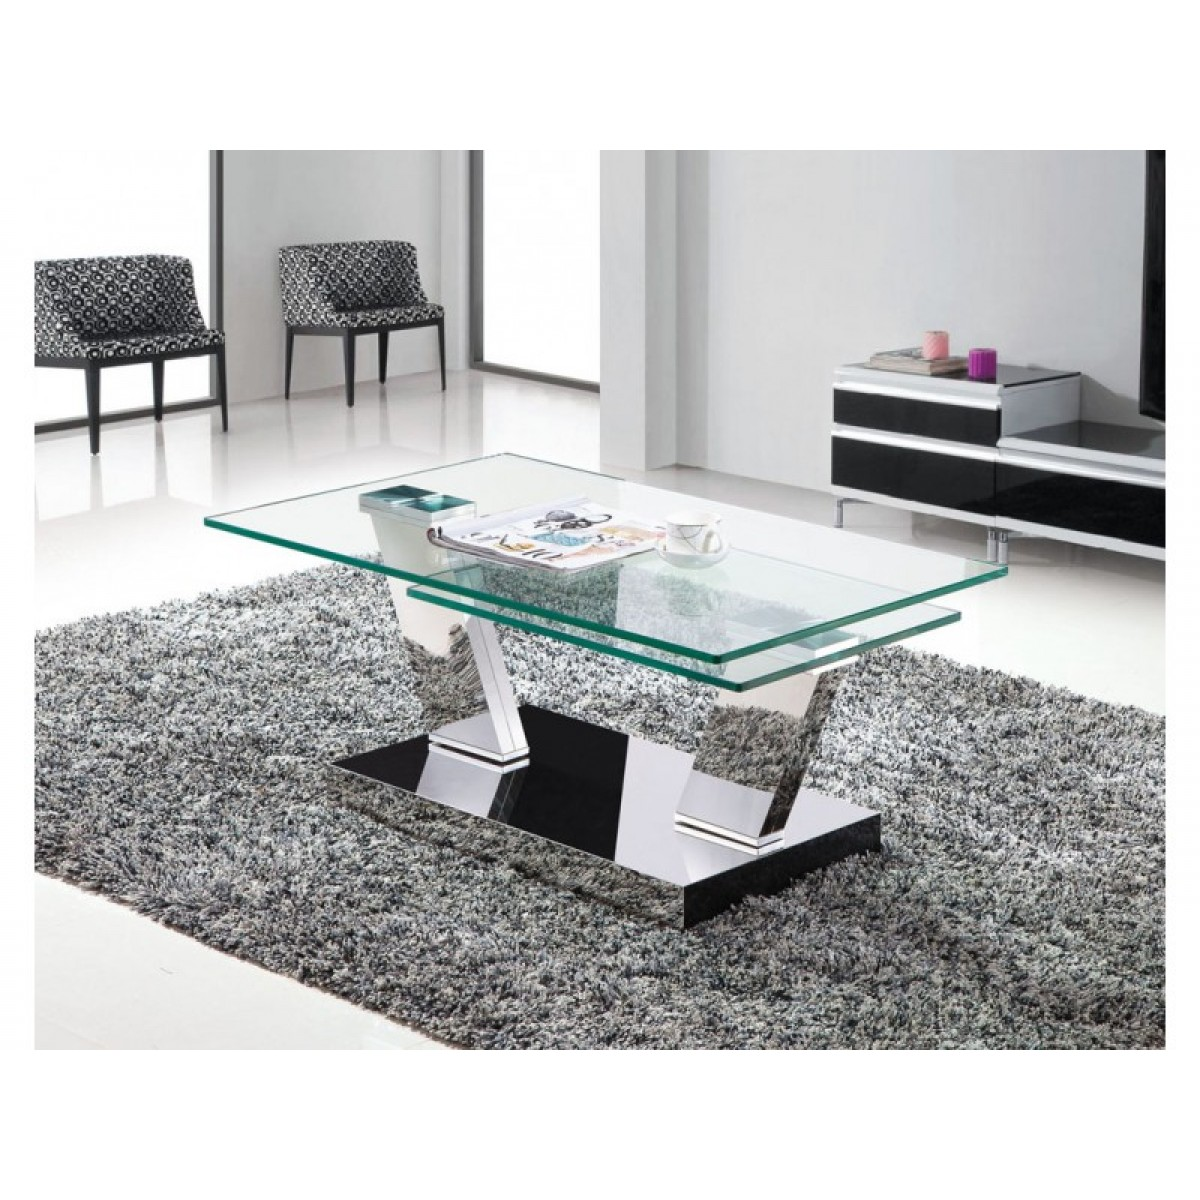 dimension table basse meuble osier 10 table de chevet dimension table basse table basse. Black Bedroom Furniture Sets. Home Design Ideas